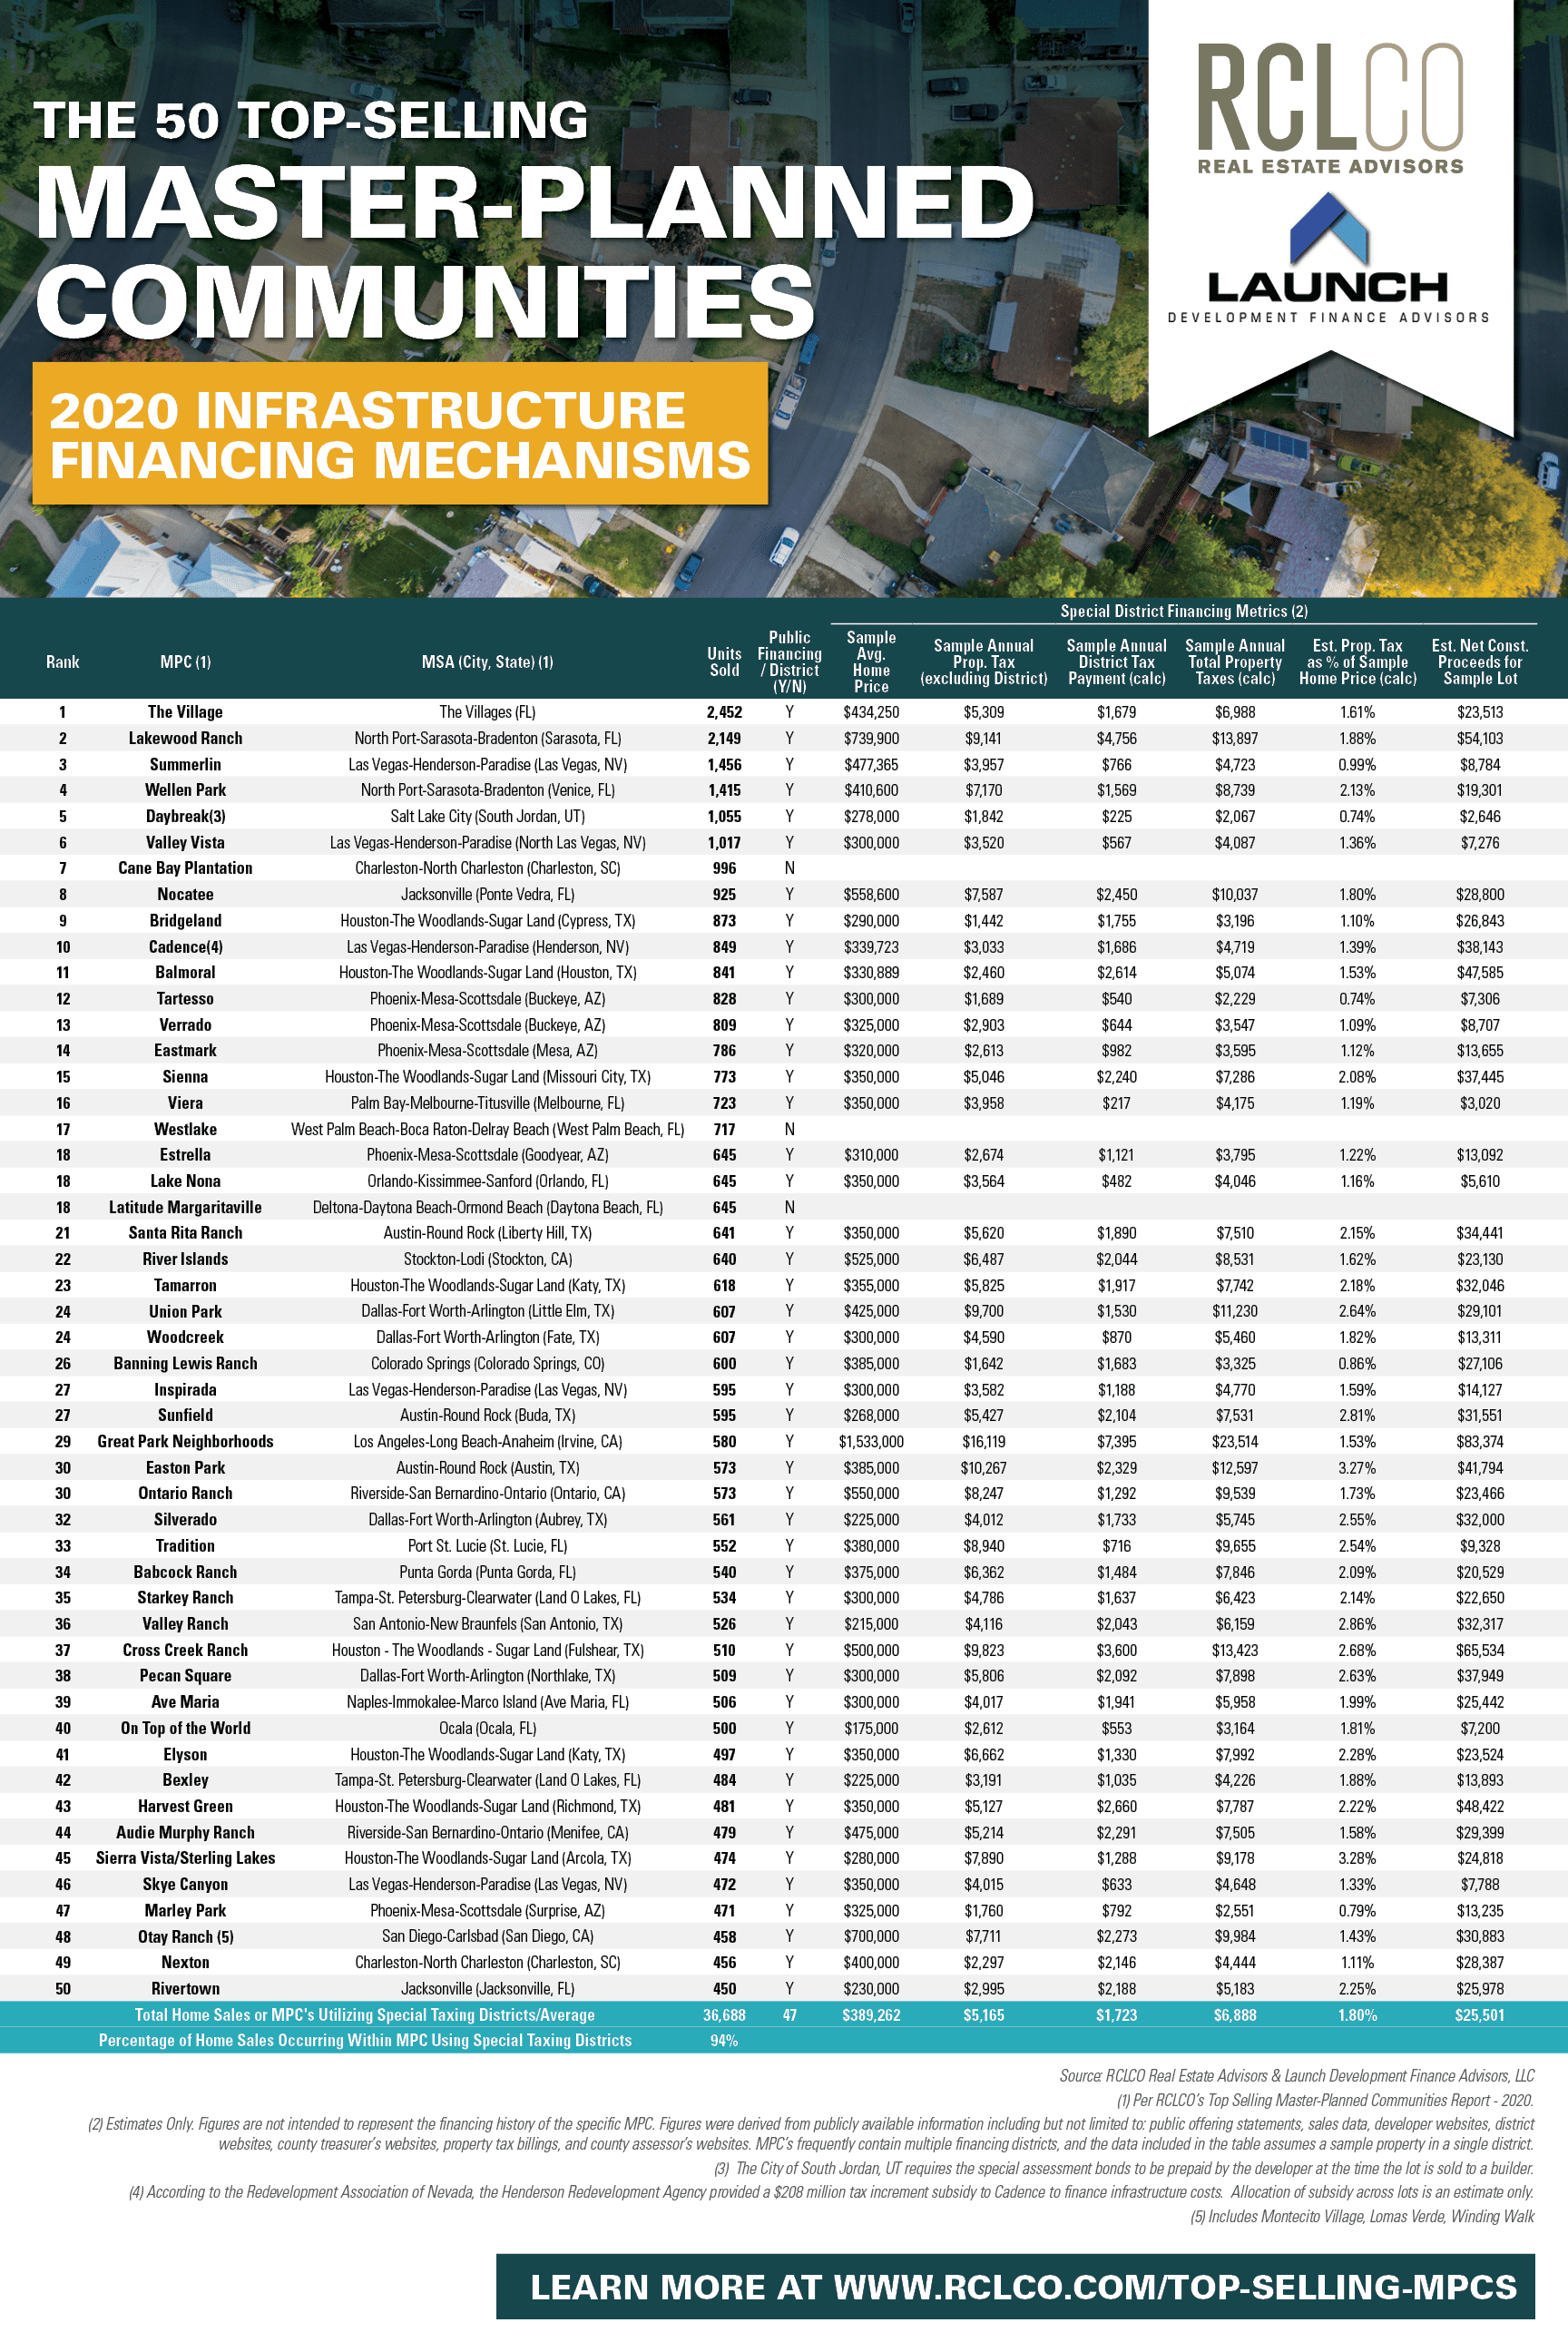 Table displaying findings of the Top-Selling MPCs and their contribution to public infrastructure